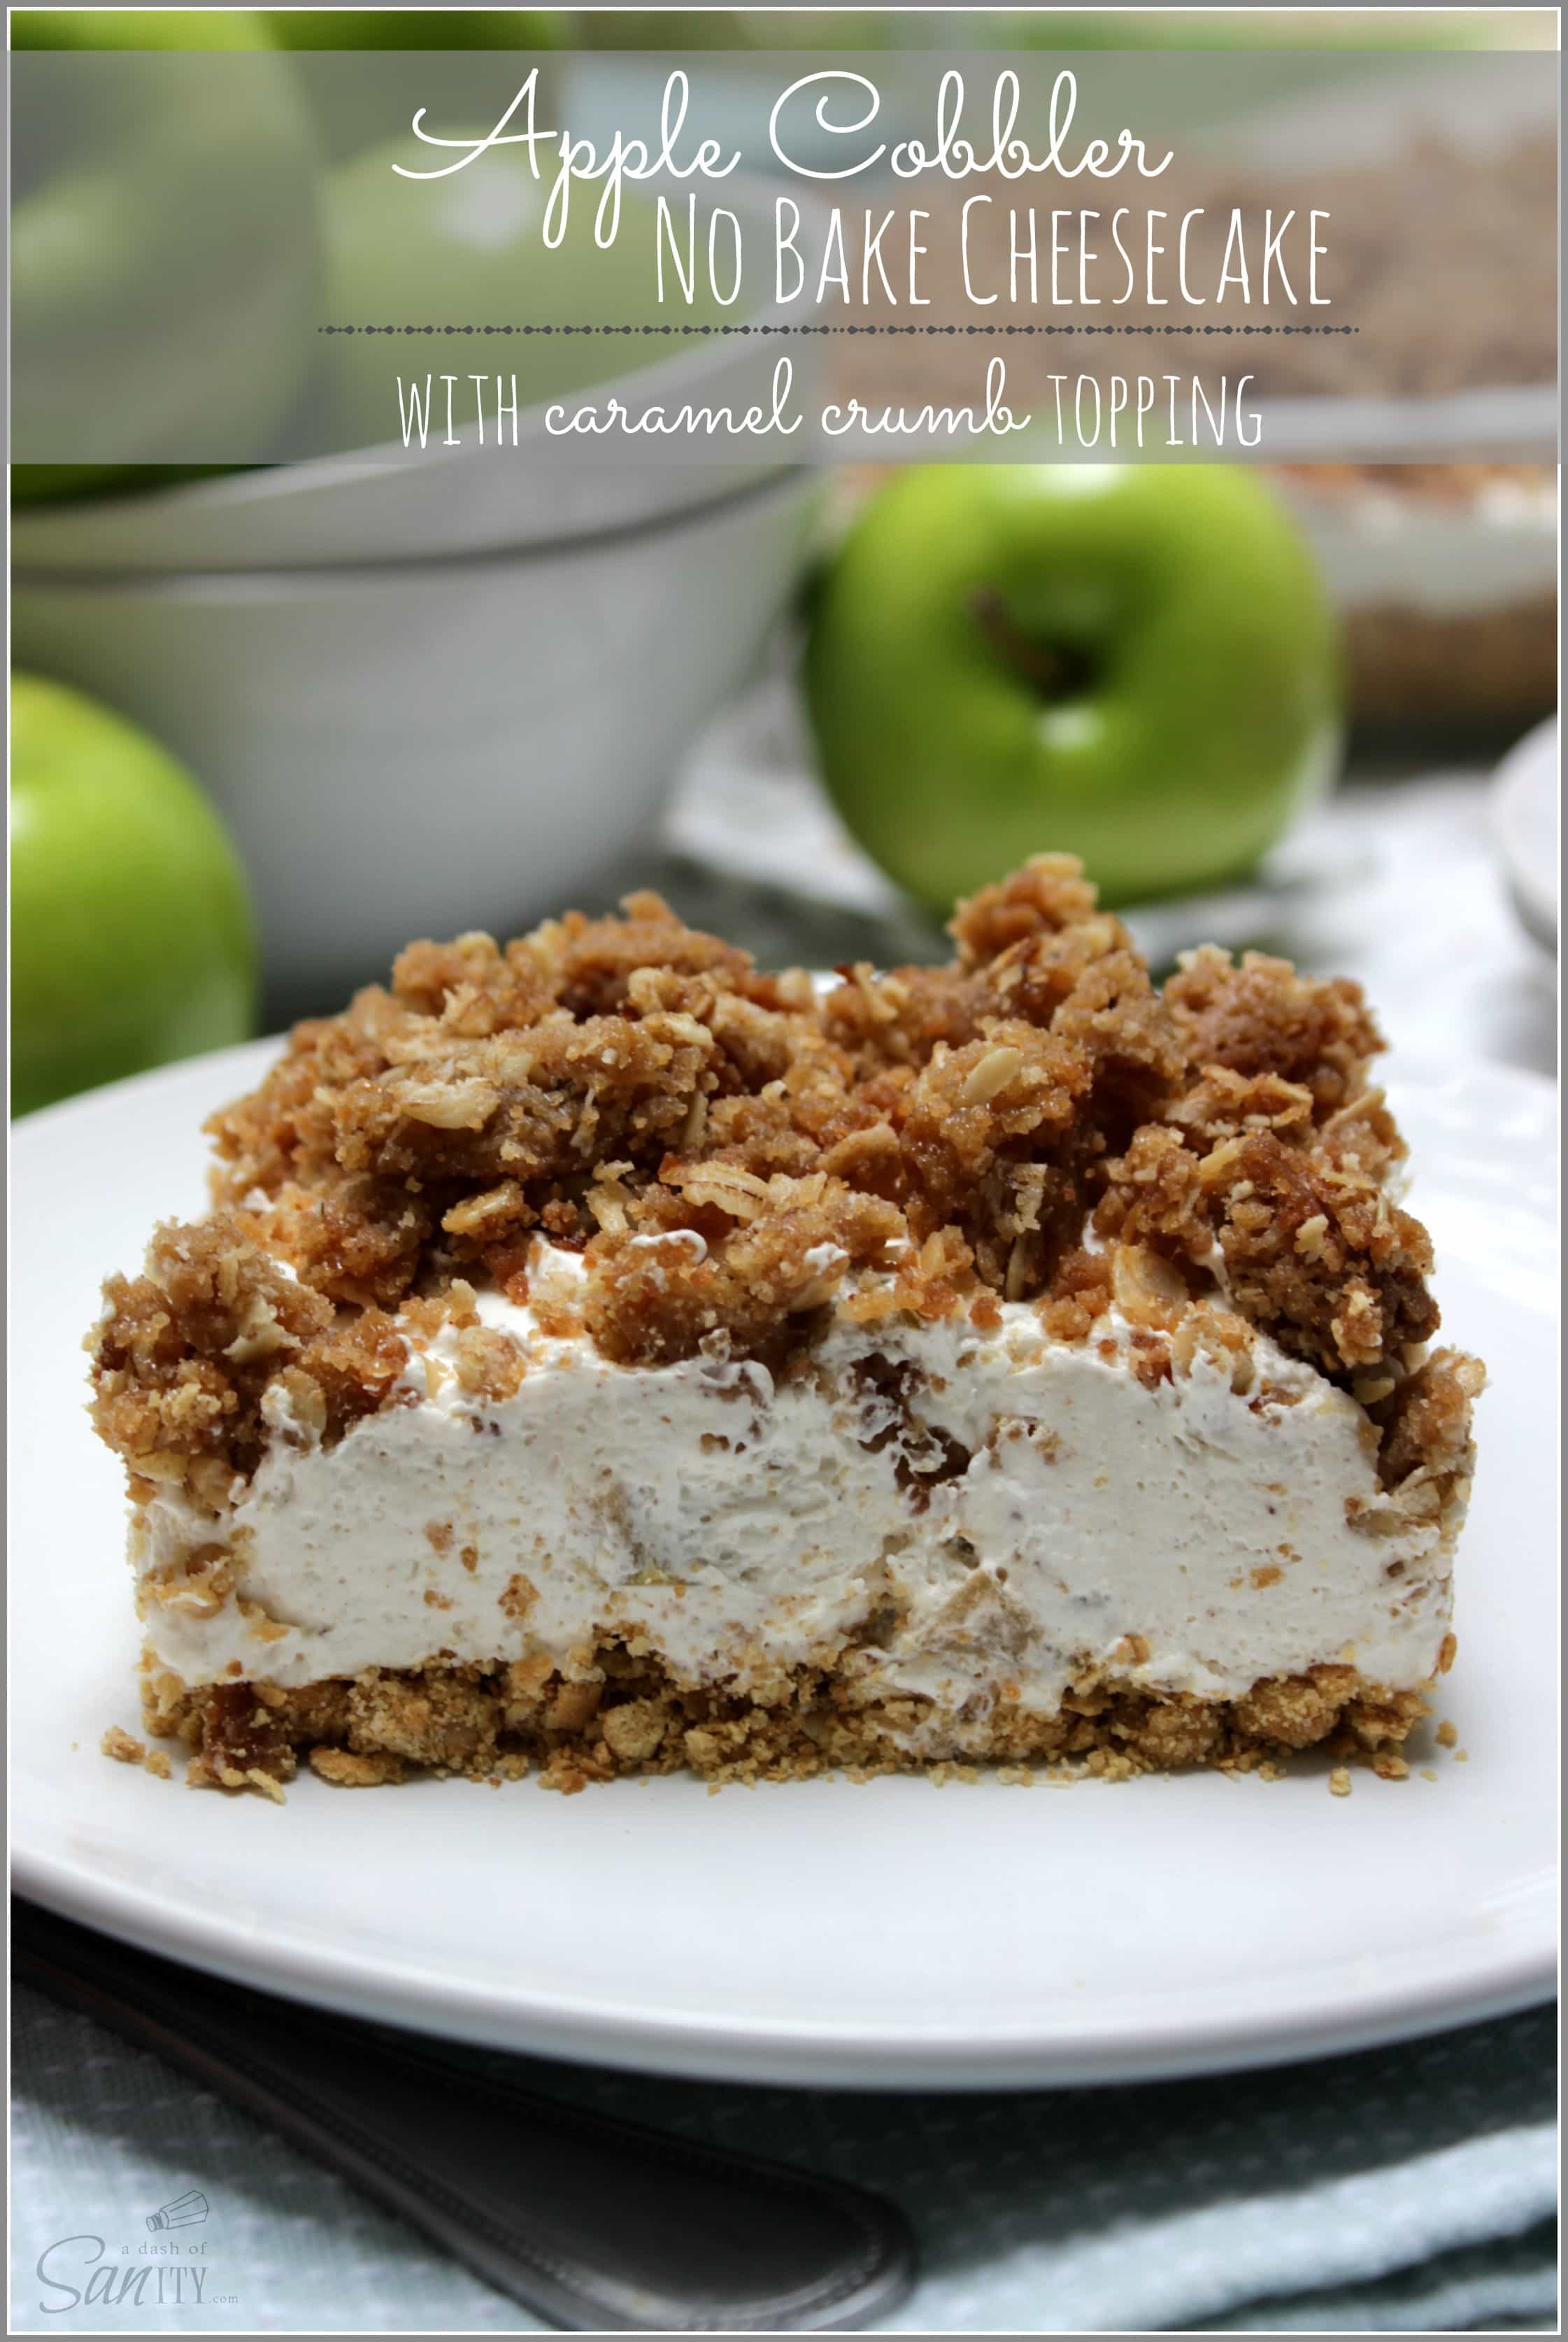 Apple Cobbler No Bake Cheesecake | with caramel crumb topping